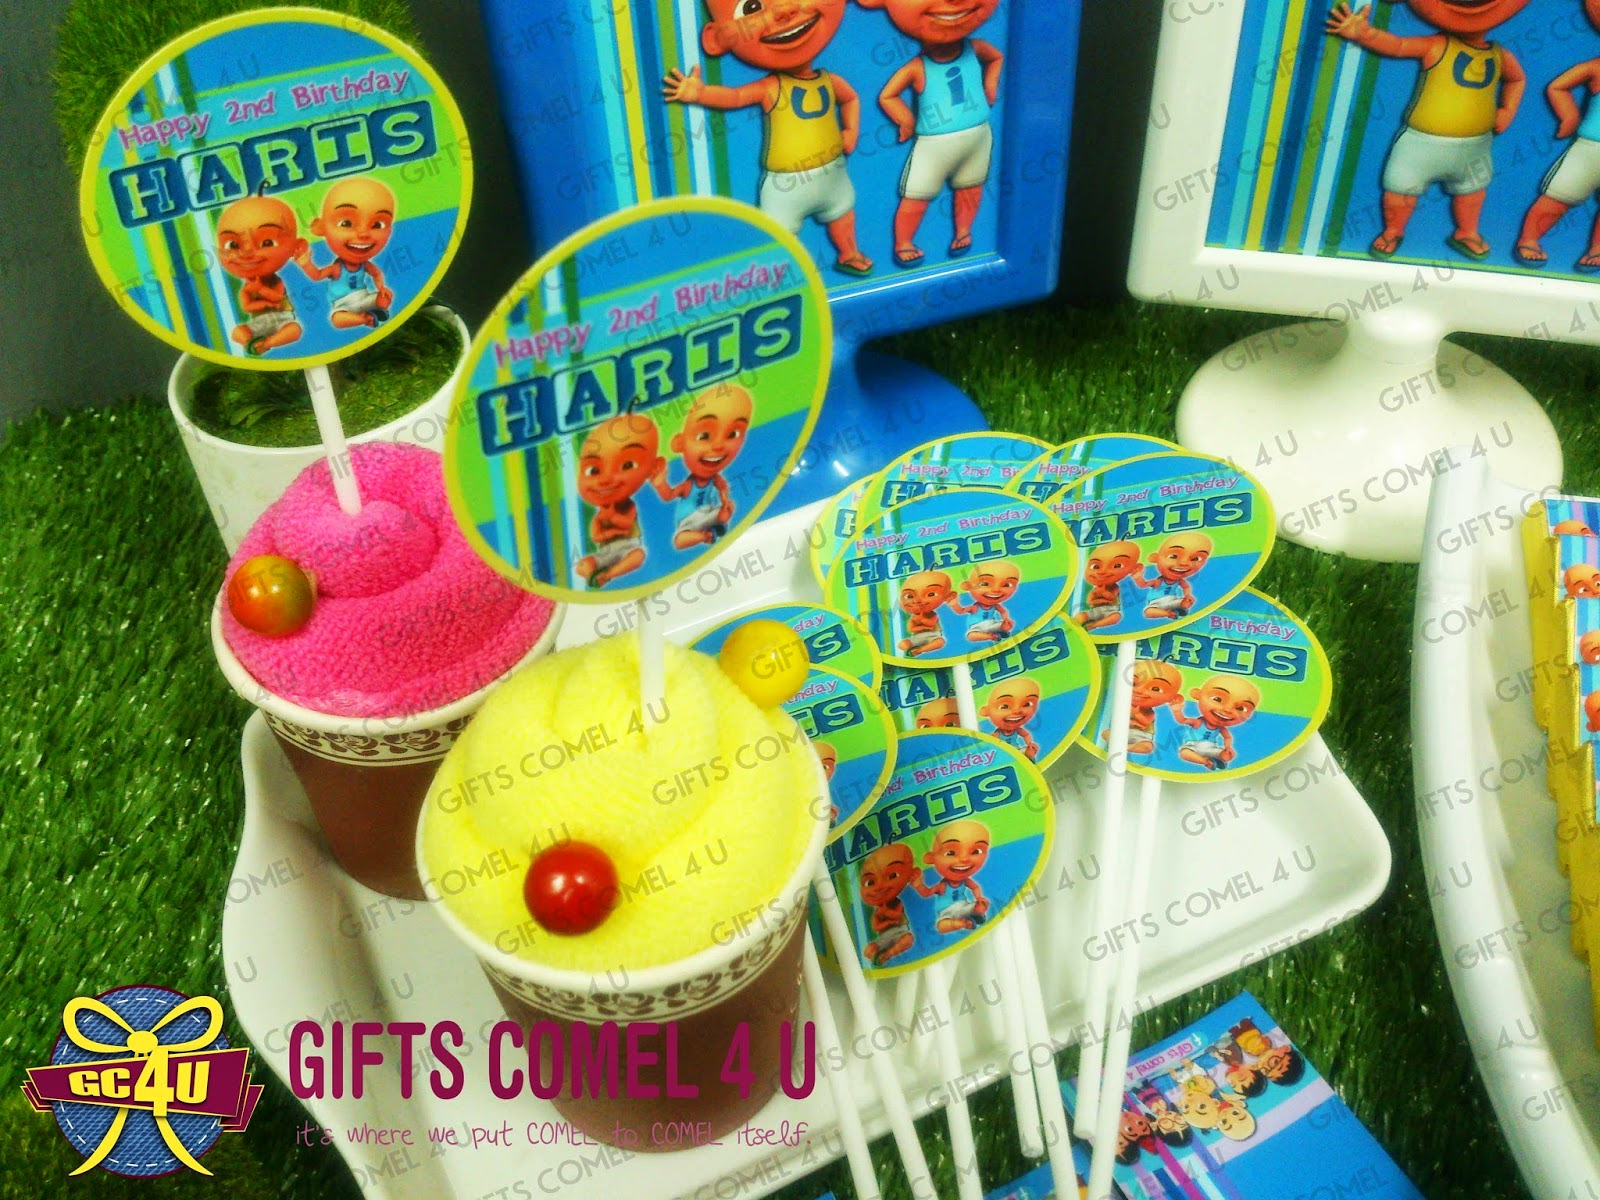 Gifts comel 4 u ordered by faerah nasir upin ipin blue upin ipin bluegreentheme cupcake topper 54cm stopboris Image collections